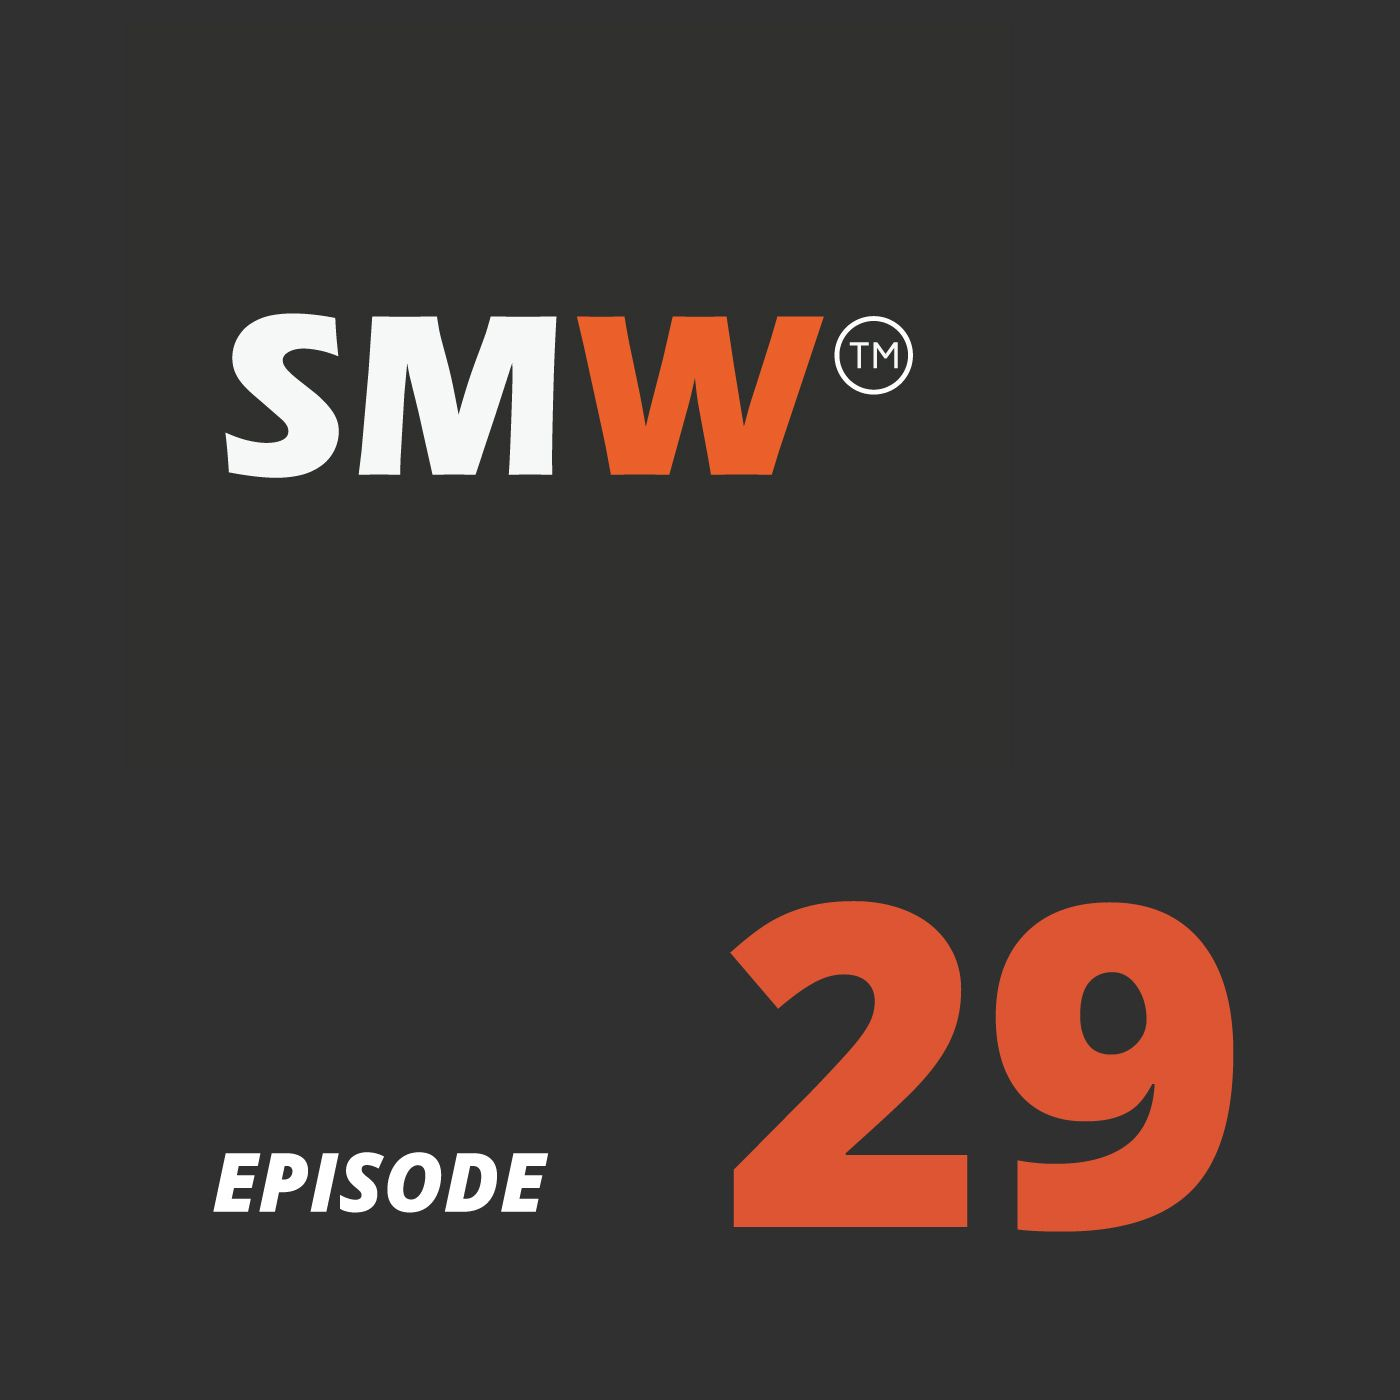 Ep. 29: Non-Steroidal Anti-Inflammatory Drugs (NSAIDs): How Much Is Too Much?